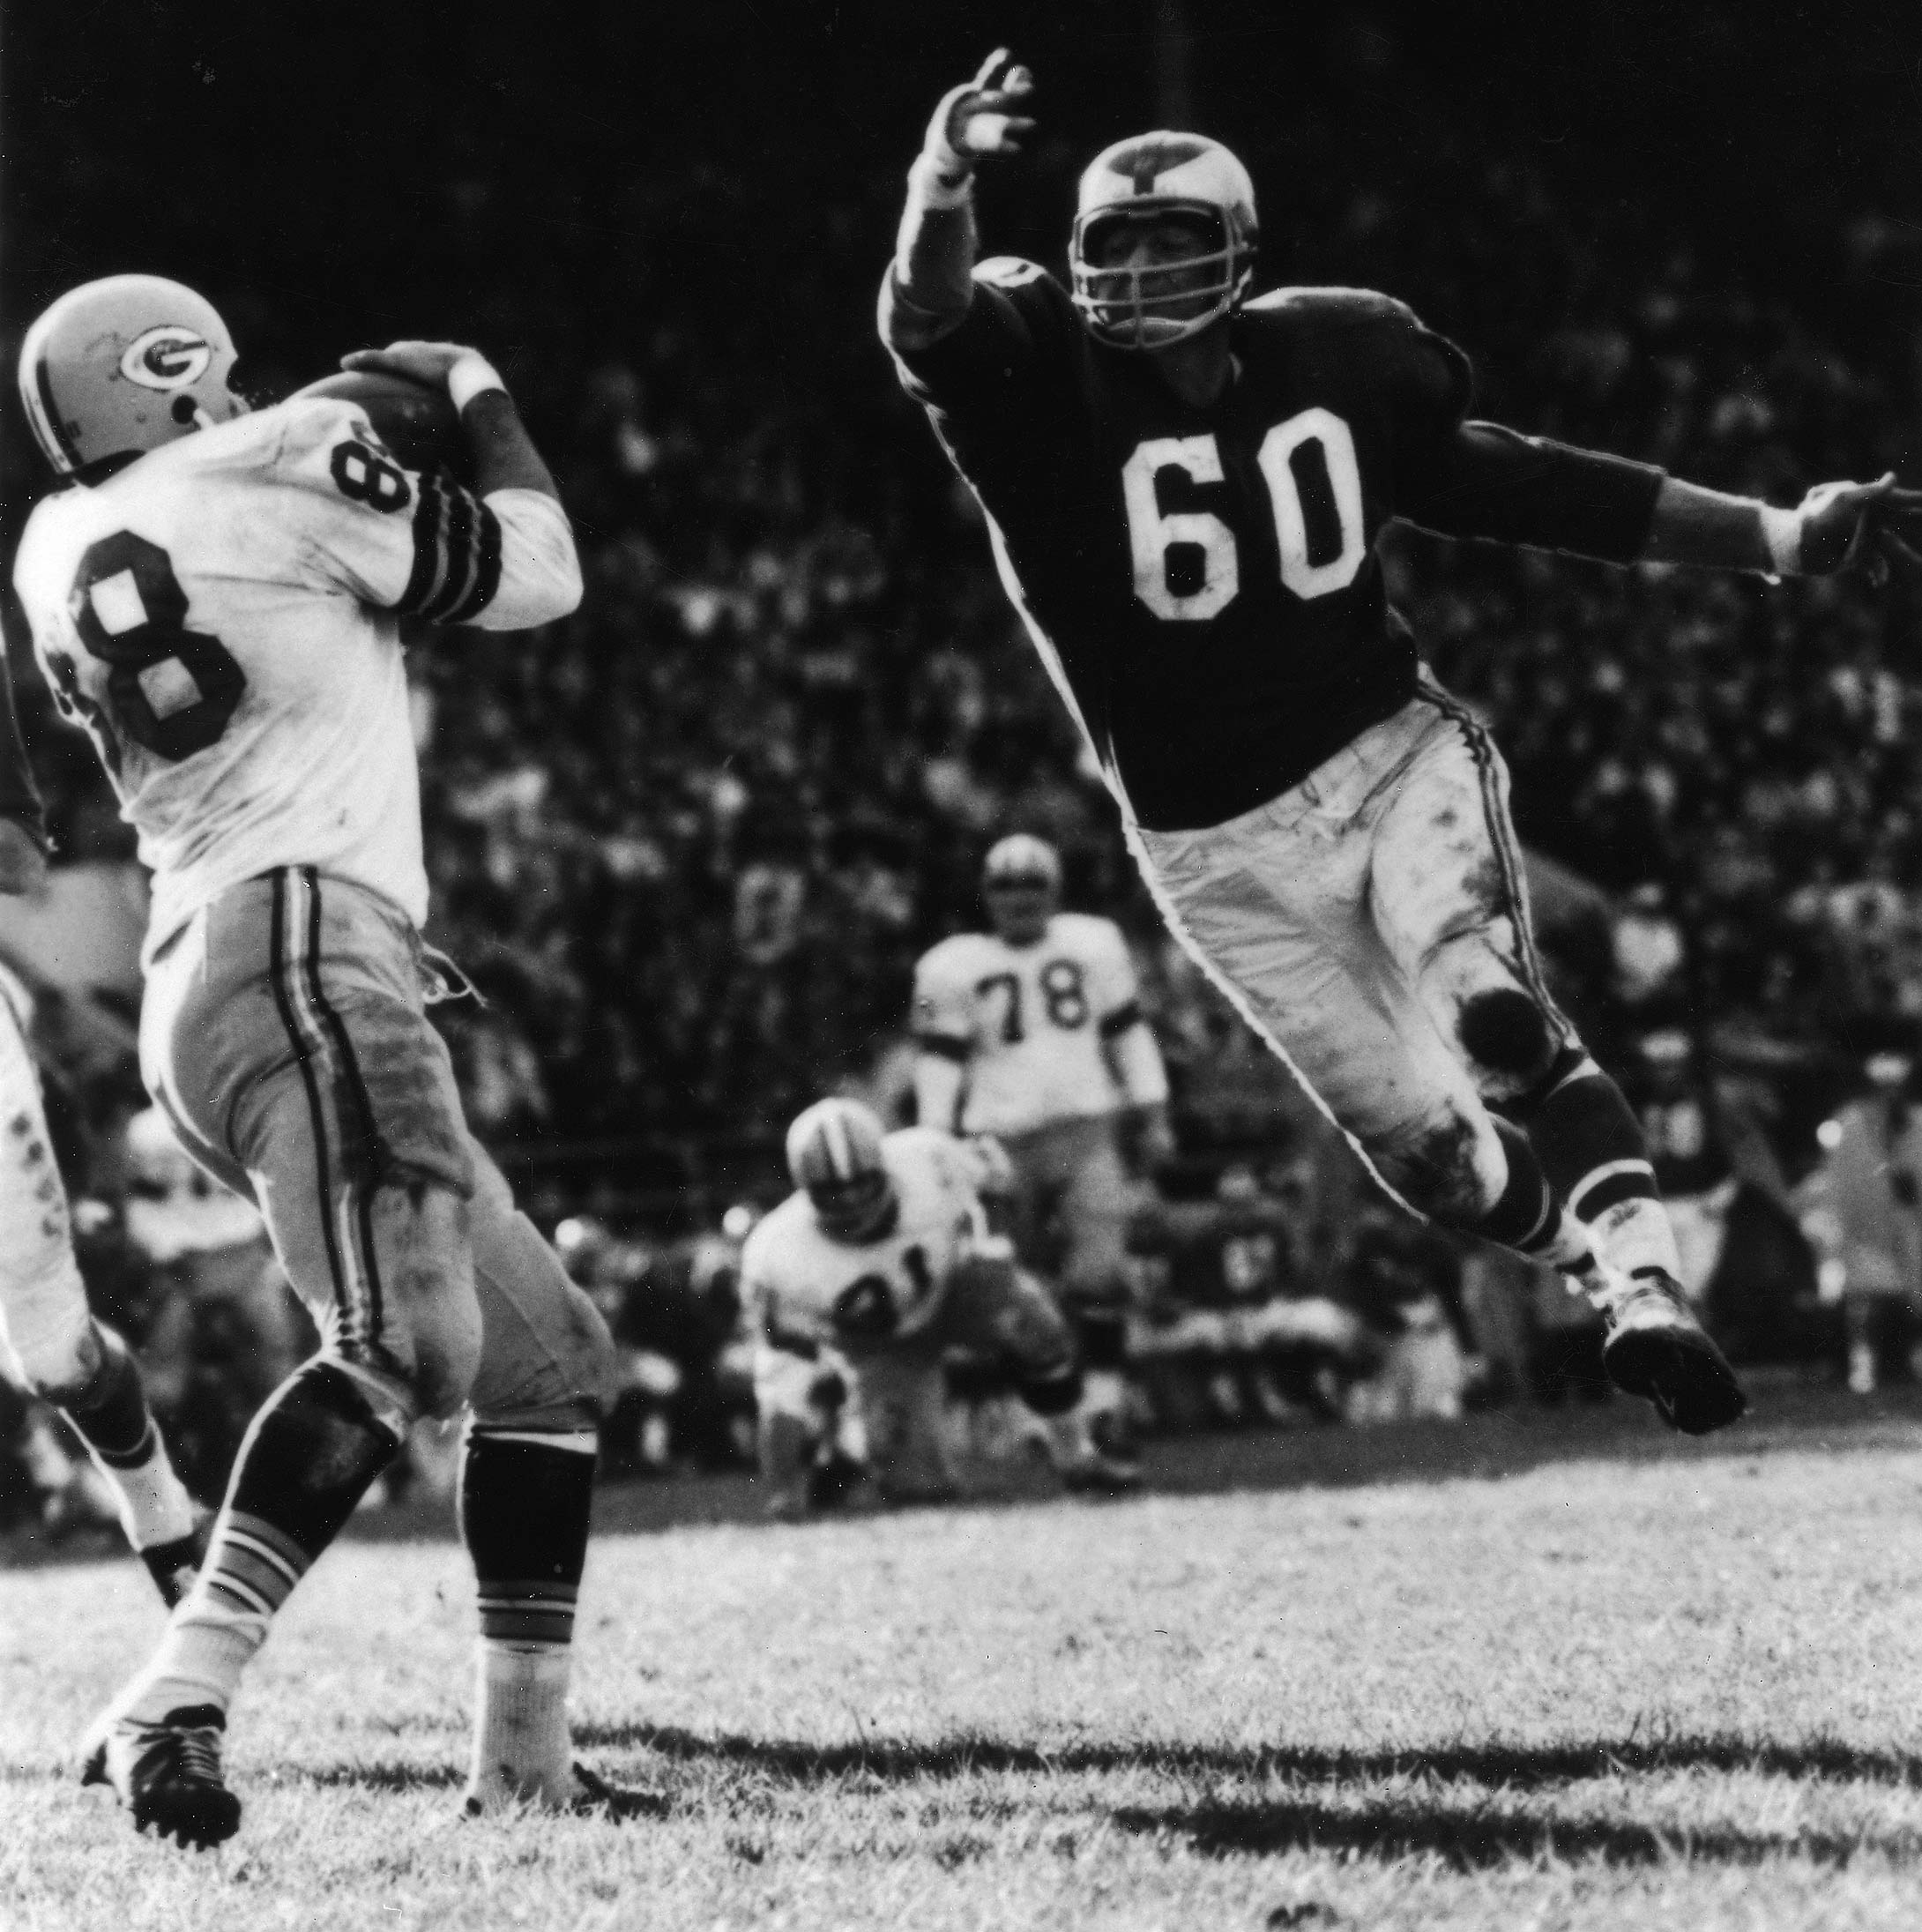 Chuck Bednarik, a two-way player for the Philadelphia Eagles, leaps toward an unidentified player from the Green Bay Packers.